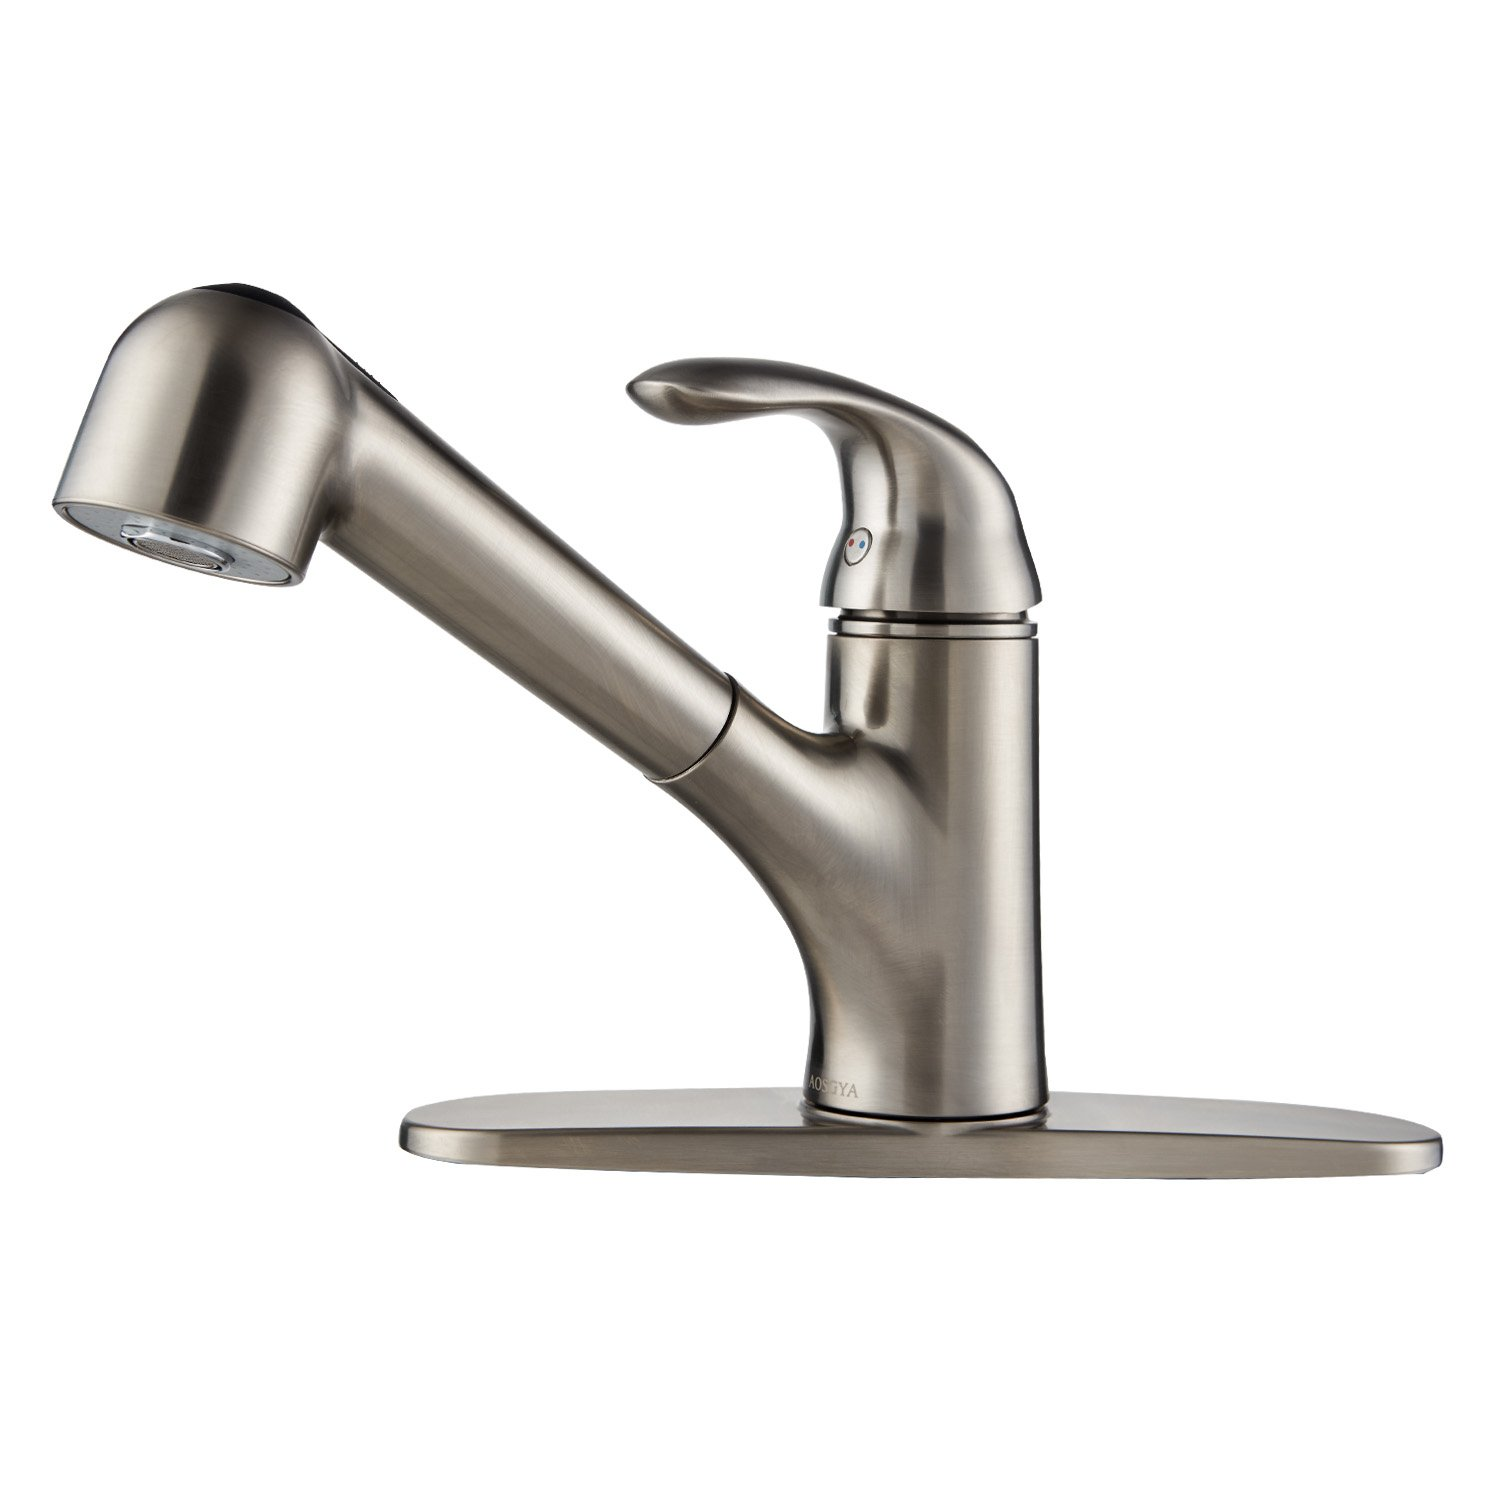 AOSGYA Pull Out Kitchen Faucet - Single Handle Kitchen Sink Faucet with Pull Down Sprayer Brushed Nickel 1 or 3 Holes, cUPC Certified Lead-Free